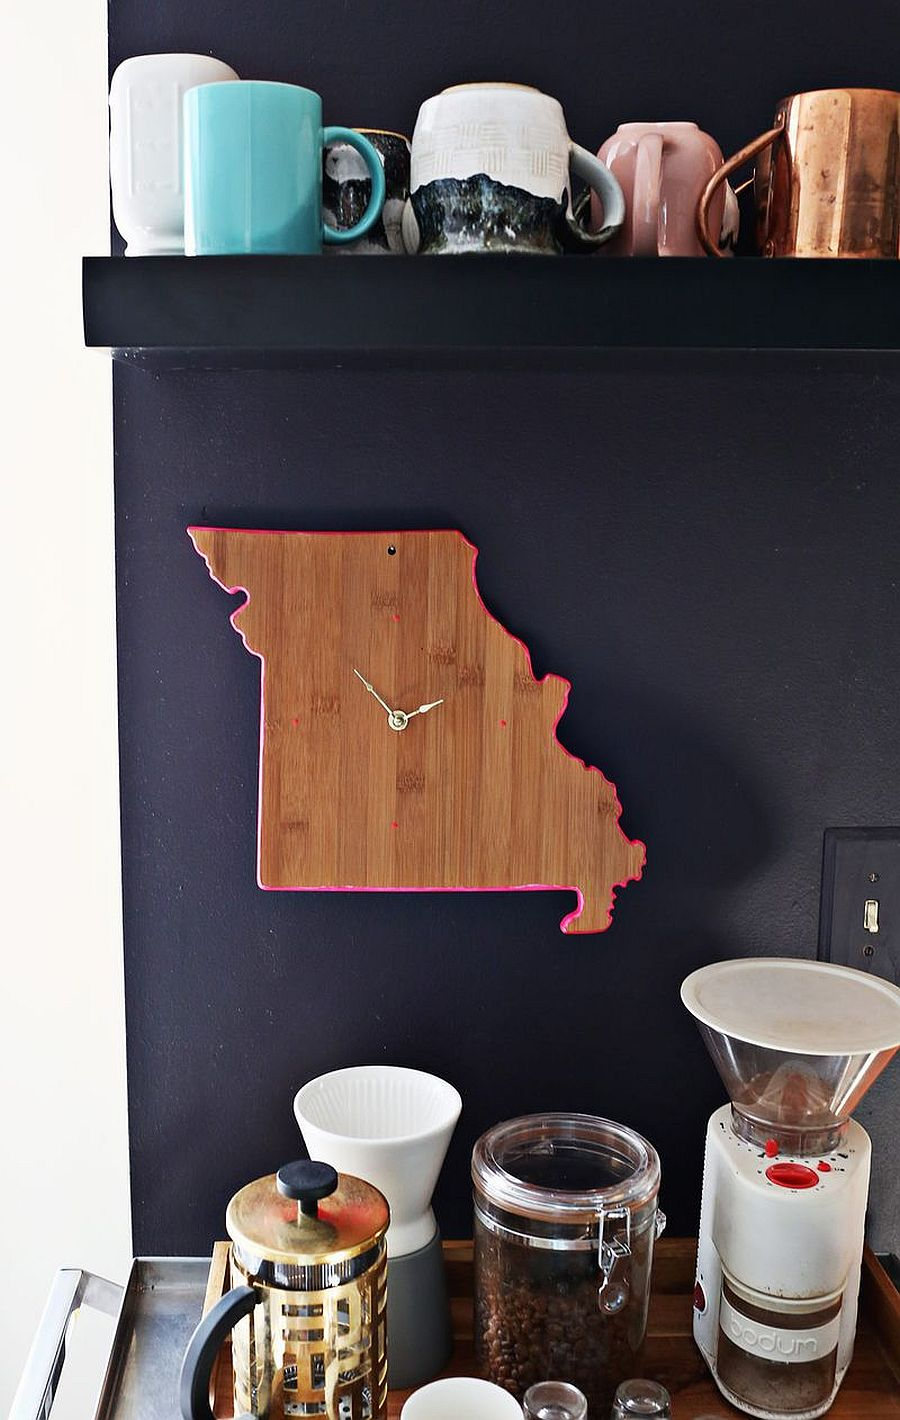 DIY cutting board clock